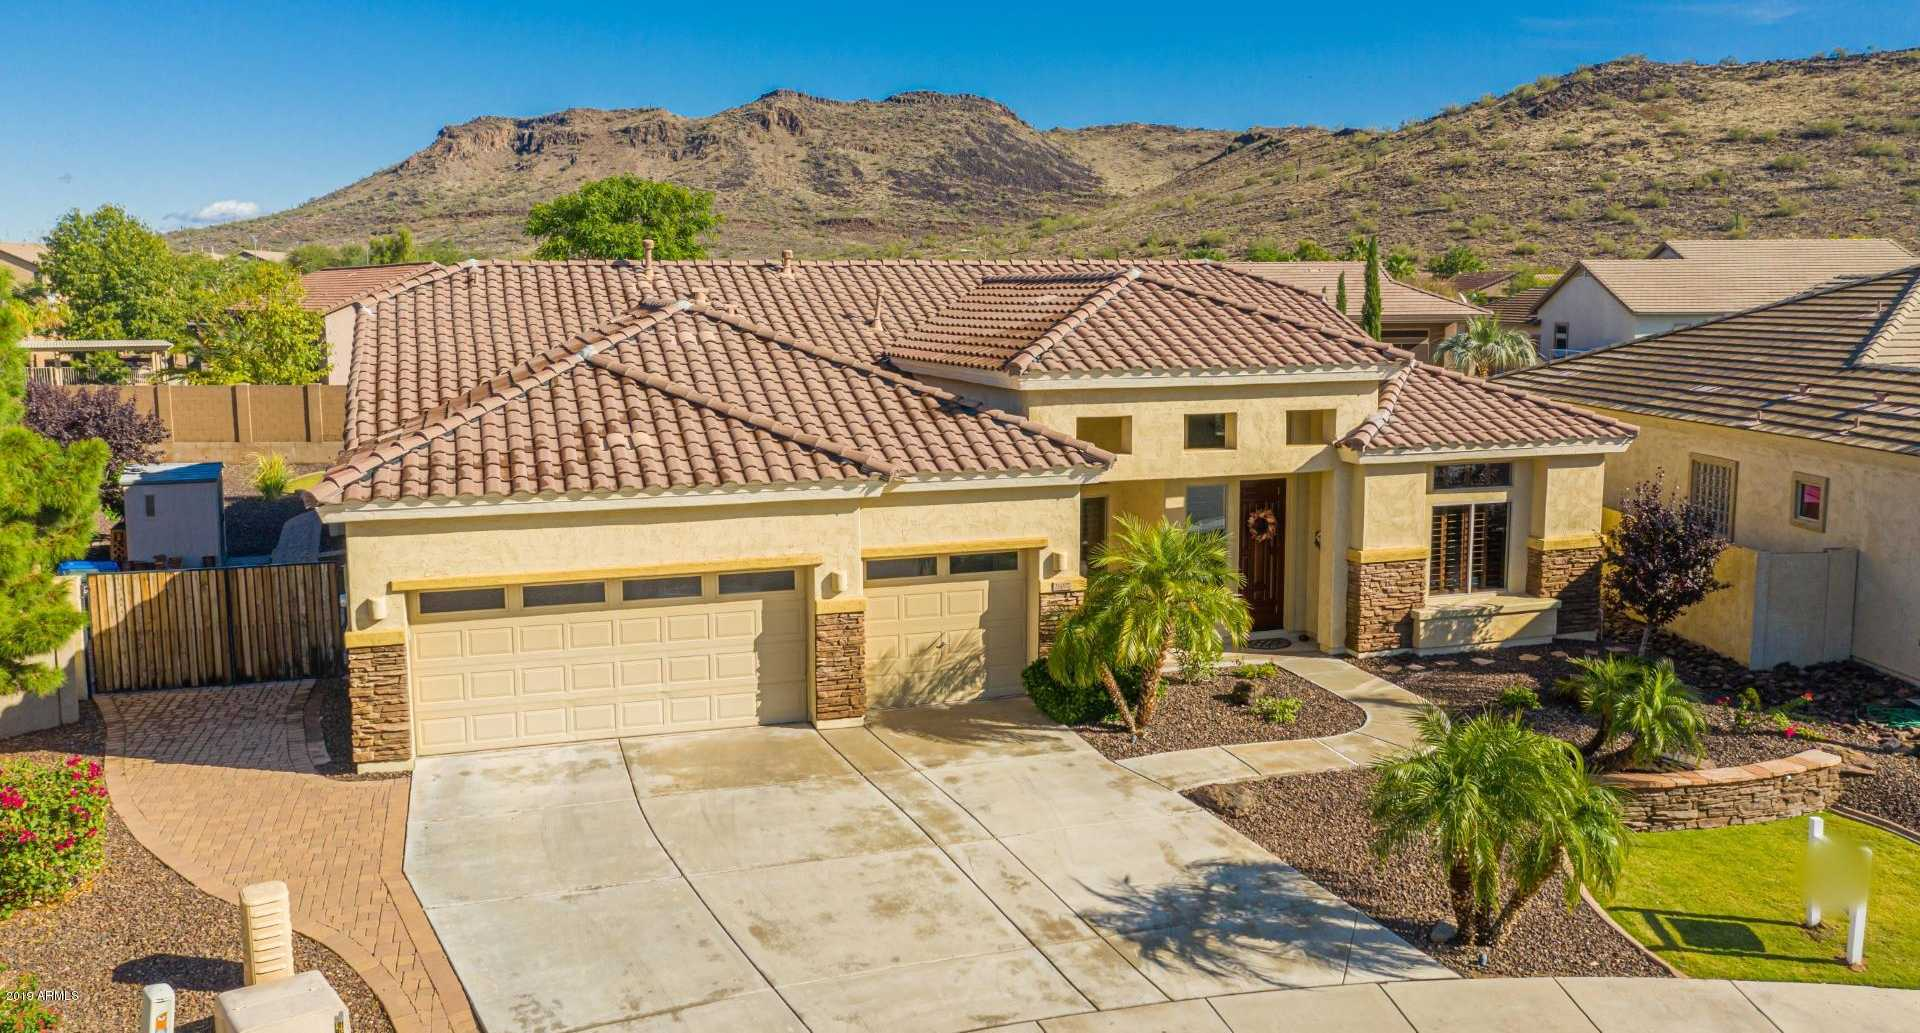 $529,000 - 4Br/3Ba - Home for Sale in Stetson Valley Parcels 7 8 9 10, Phoenix